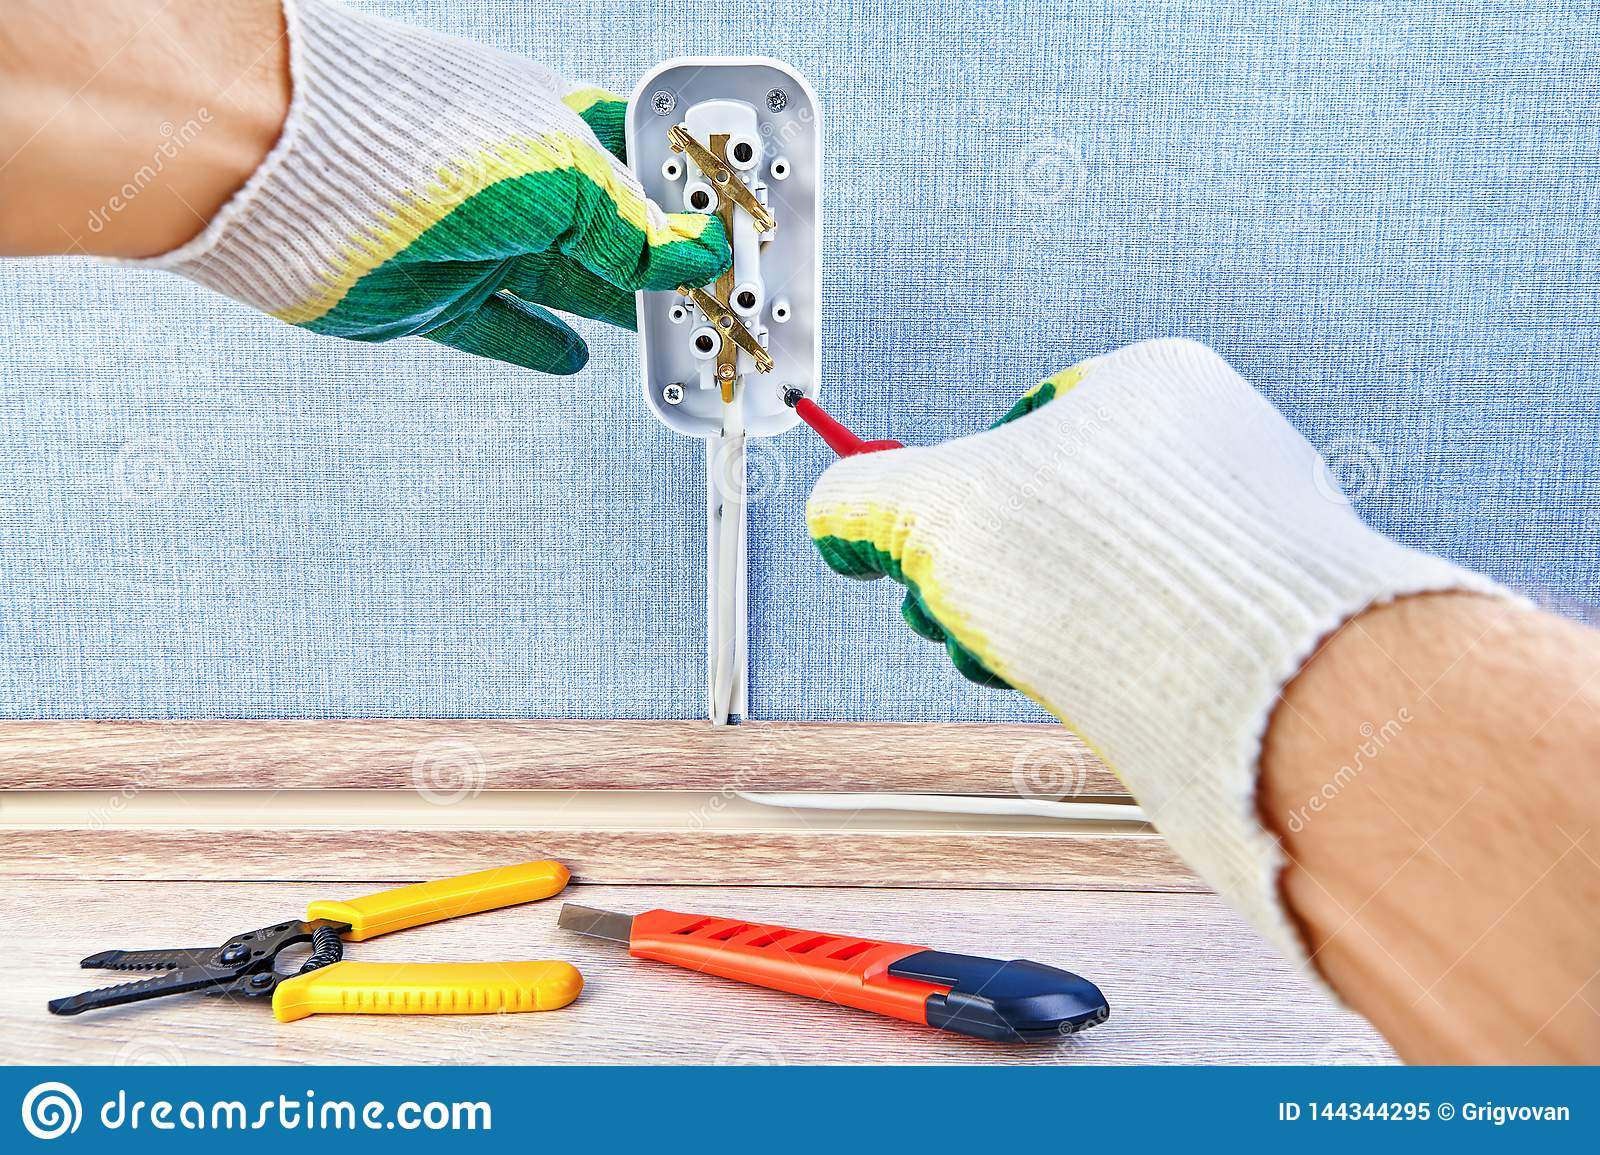 Twisting in wall outlet stock image. Image of electricity ... on wiring two outlets, wiring a set of outlets, wiring house outlets, wiring old outlets, wiring kitchen outlets, wiring multiple outlets,